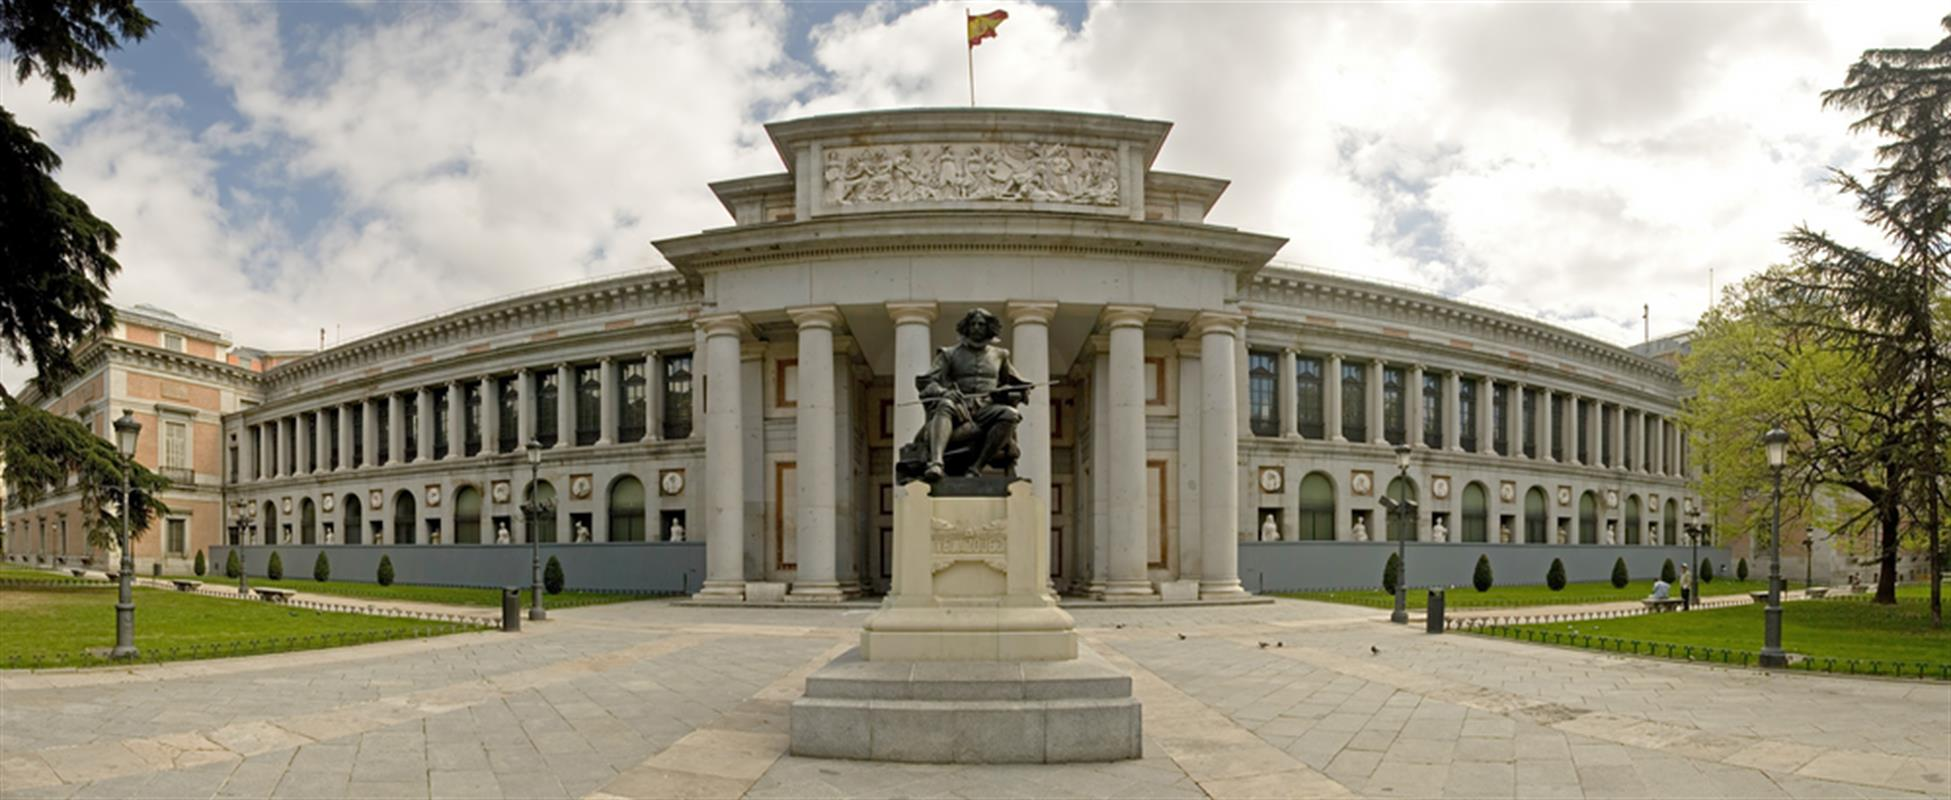 Image result for museo del prado